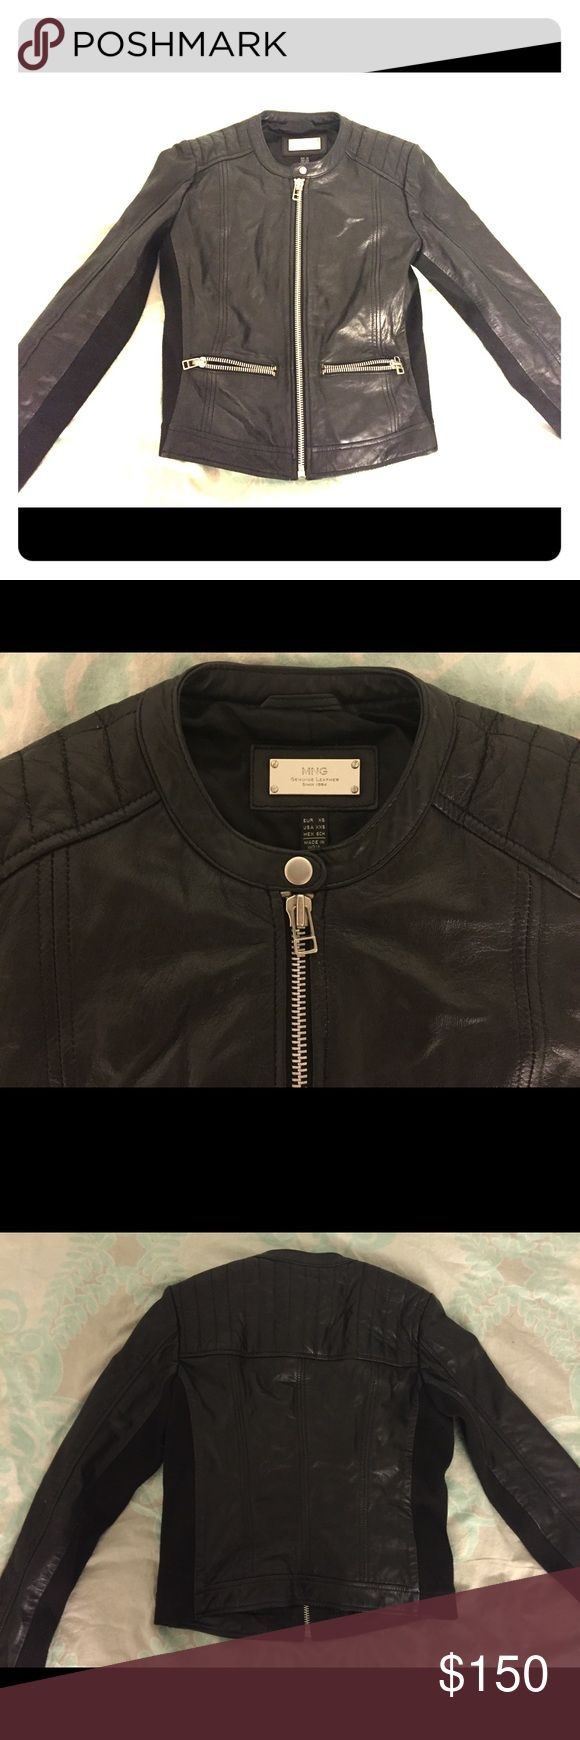 Mango Genuine Leather Black Bomber Jacket XS XXS Modern, clean simple look, very slimming and figure flattering, stretch mixed wool panels under arms.  Qualify Black Leather, very well made US: XXS EU: XS (fits like XS) Pristine like new condition (barely worn since I have another jacket just like this one) Mango Jackets & Coats